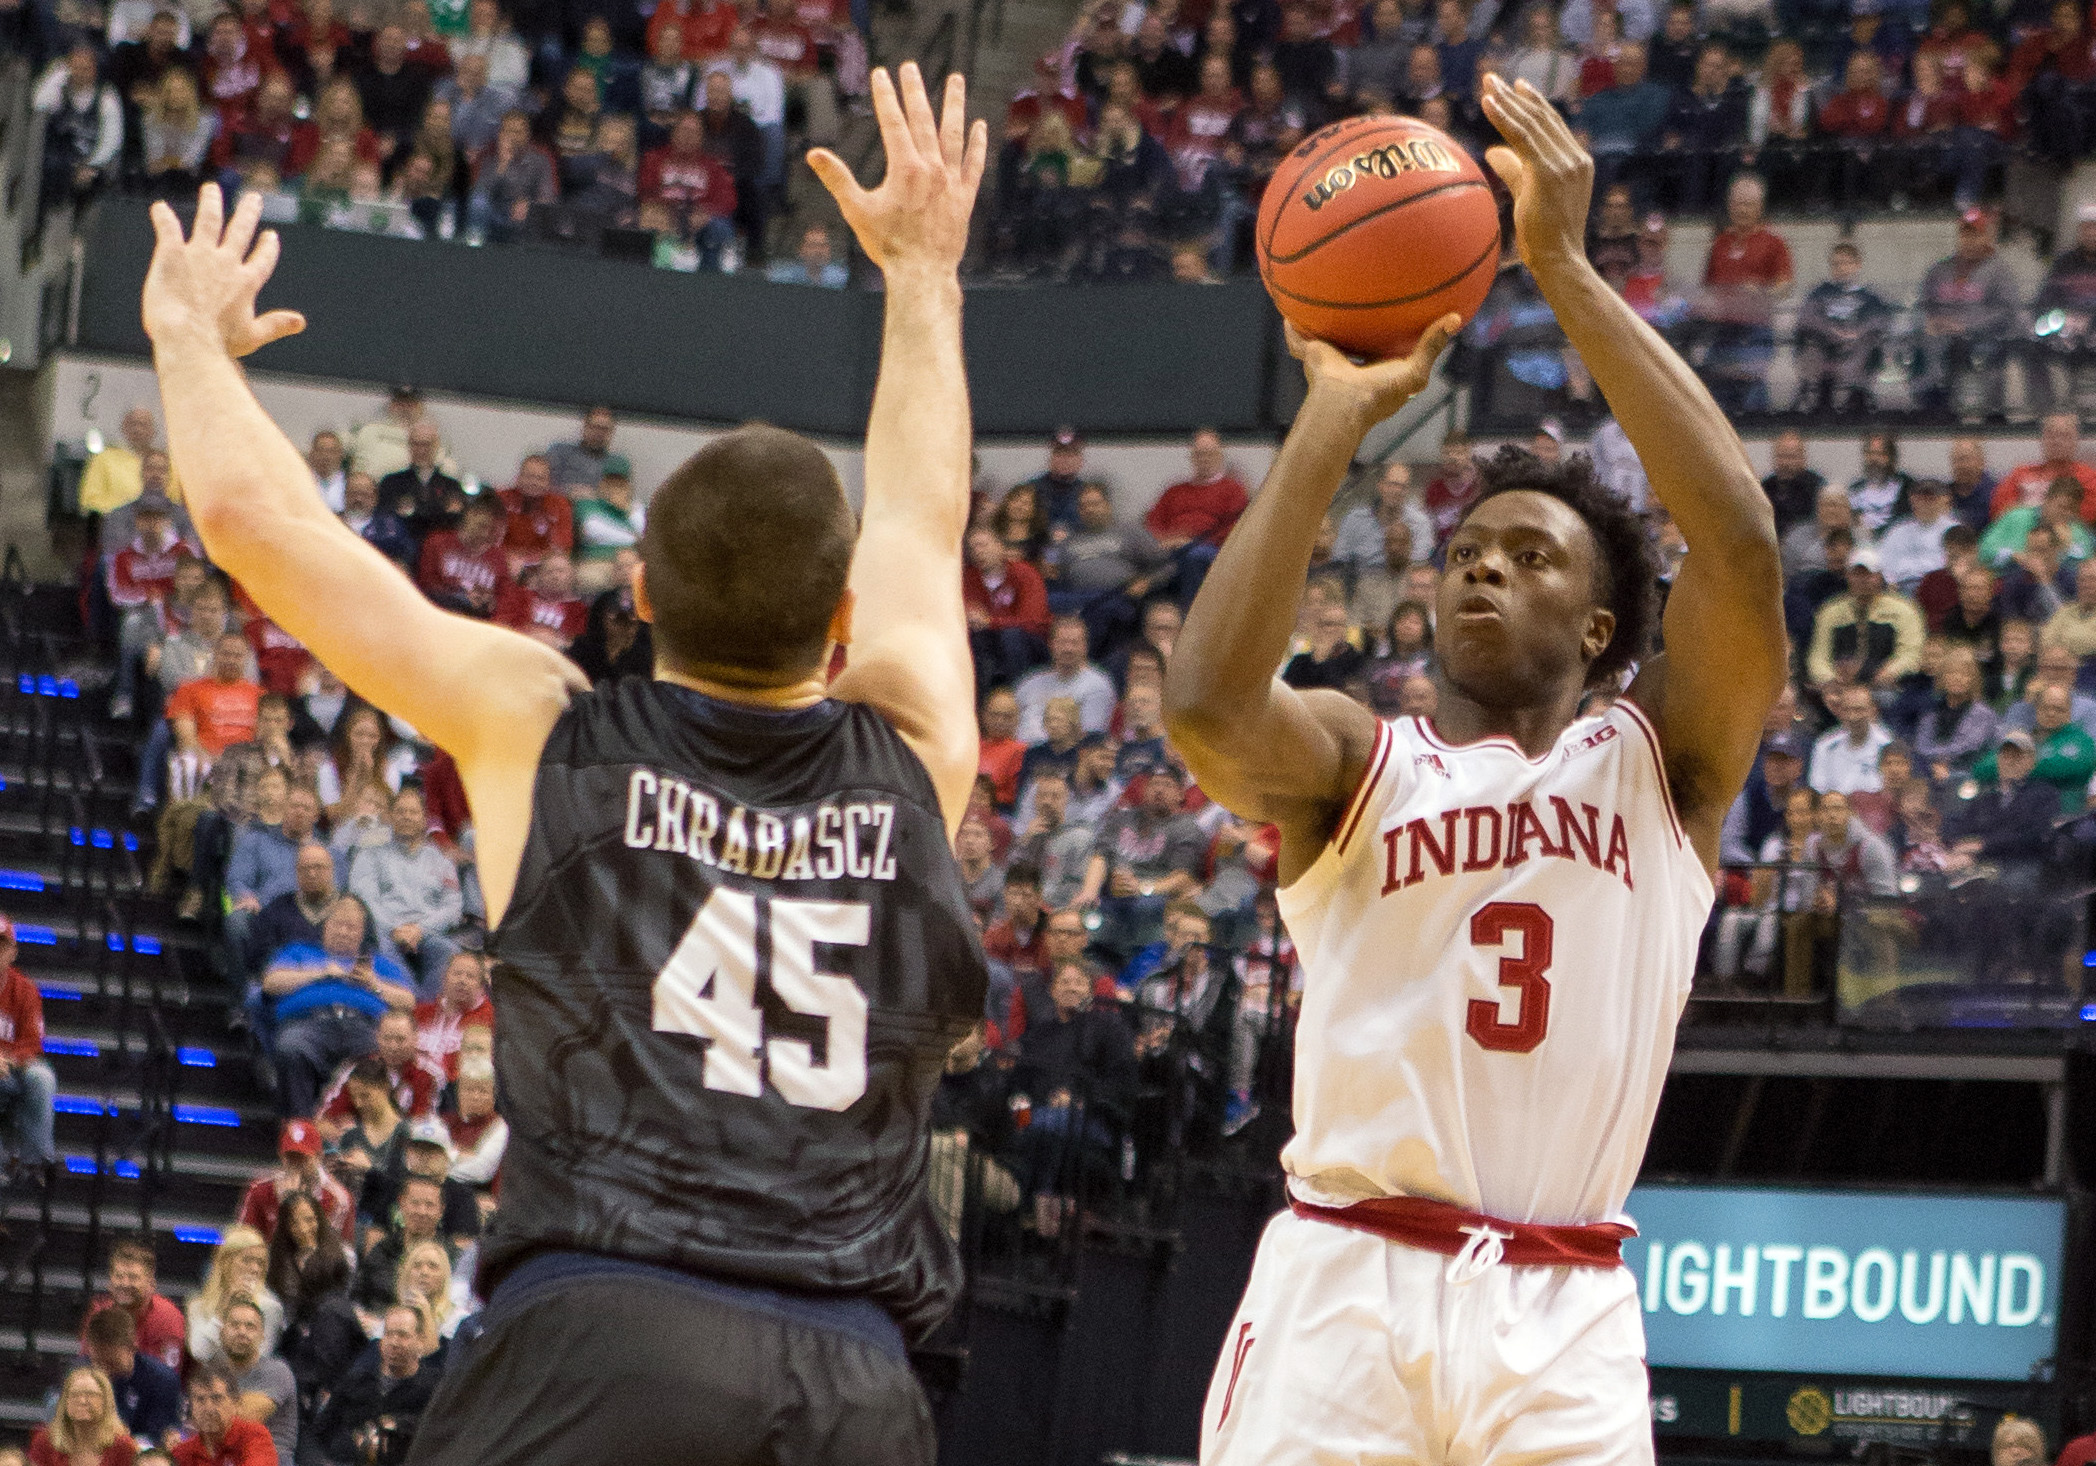 9751765-ncaa-basketball-crossroads-classic-butler-at-indiana-1